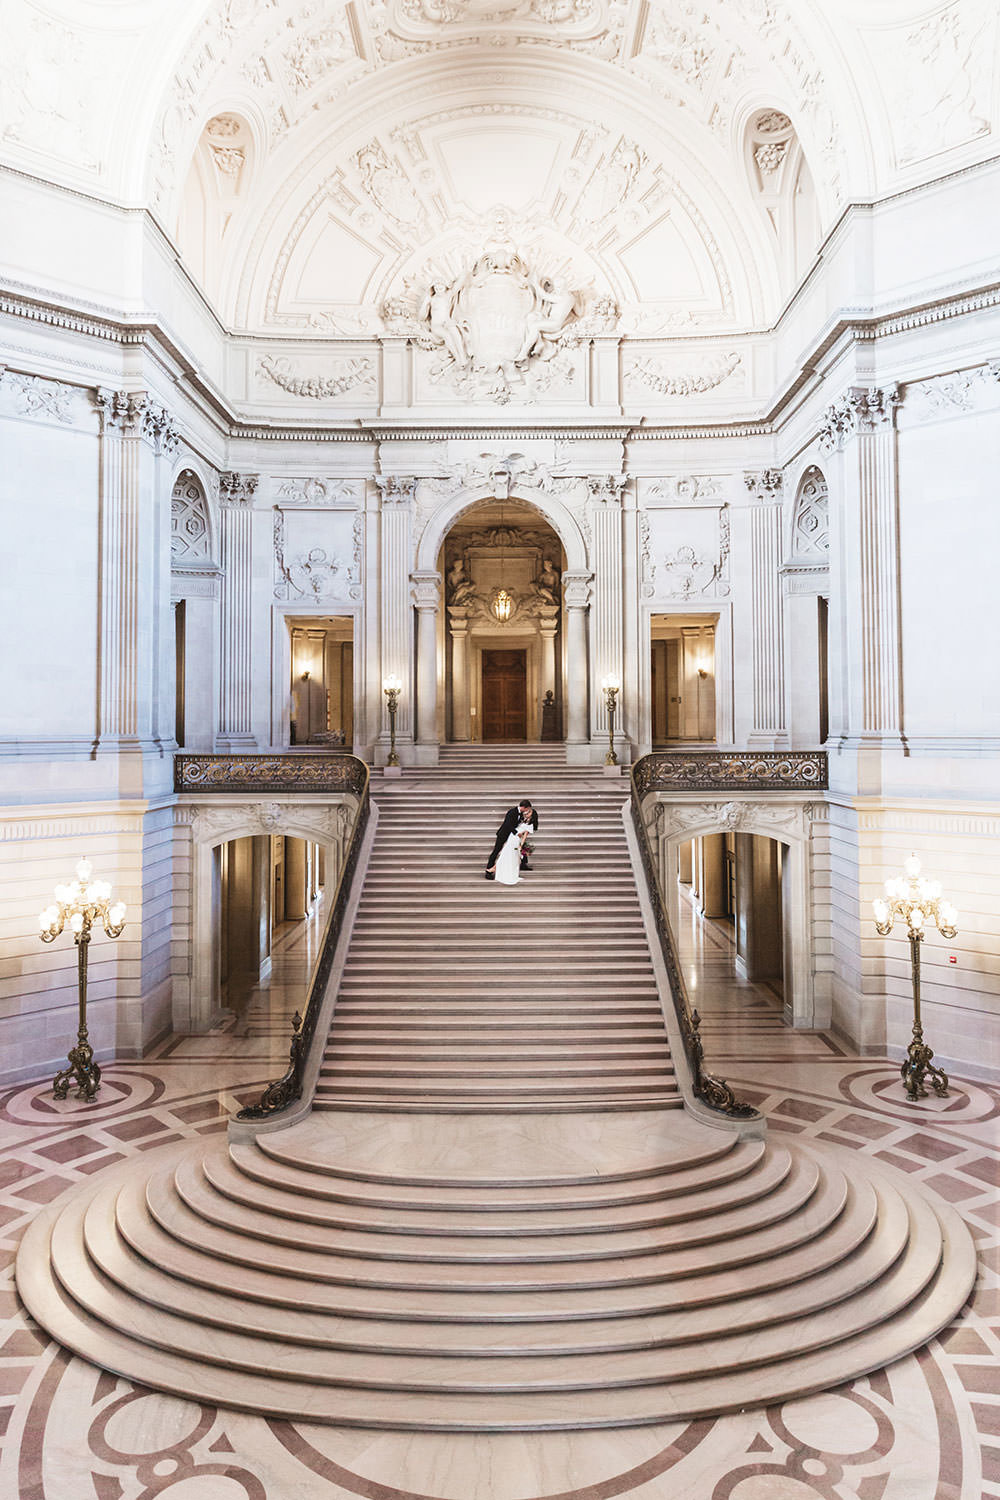 the most iconic photo of the grand staircase at city hall